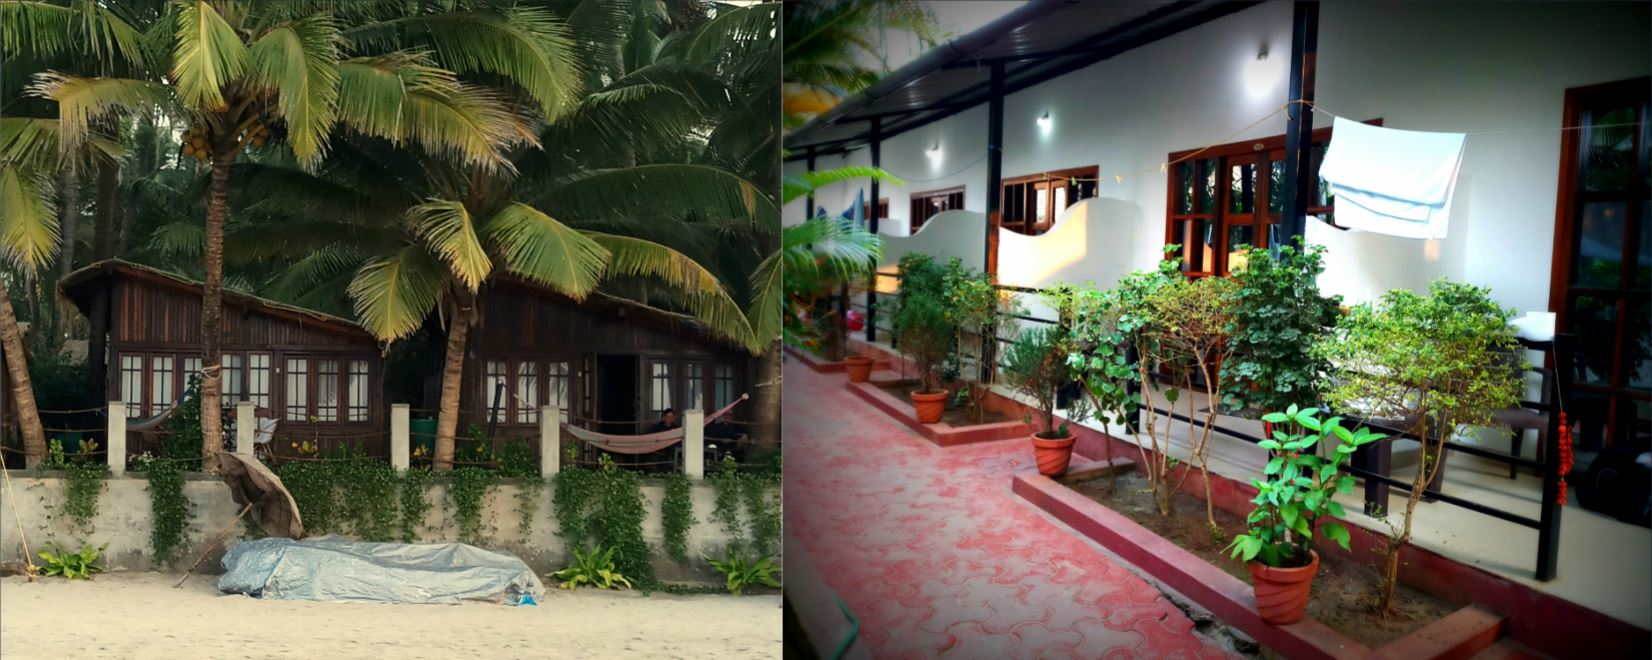 Accommodation in Palolem, Goa